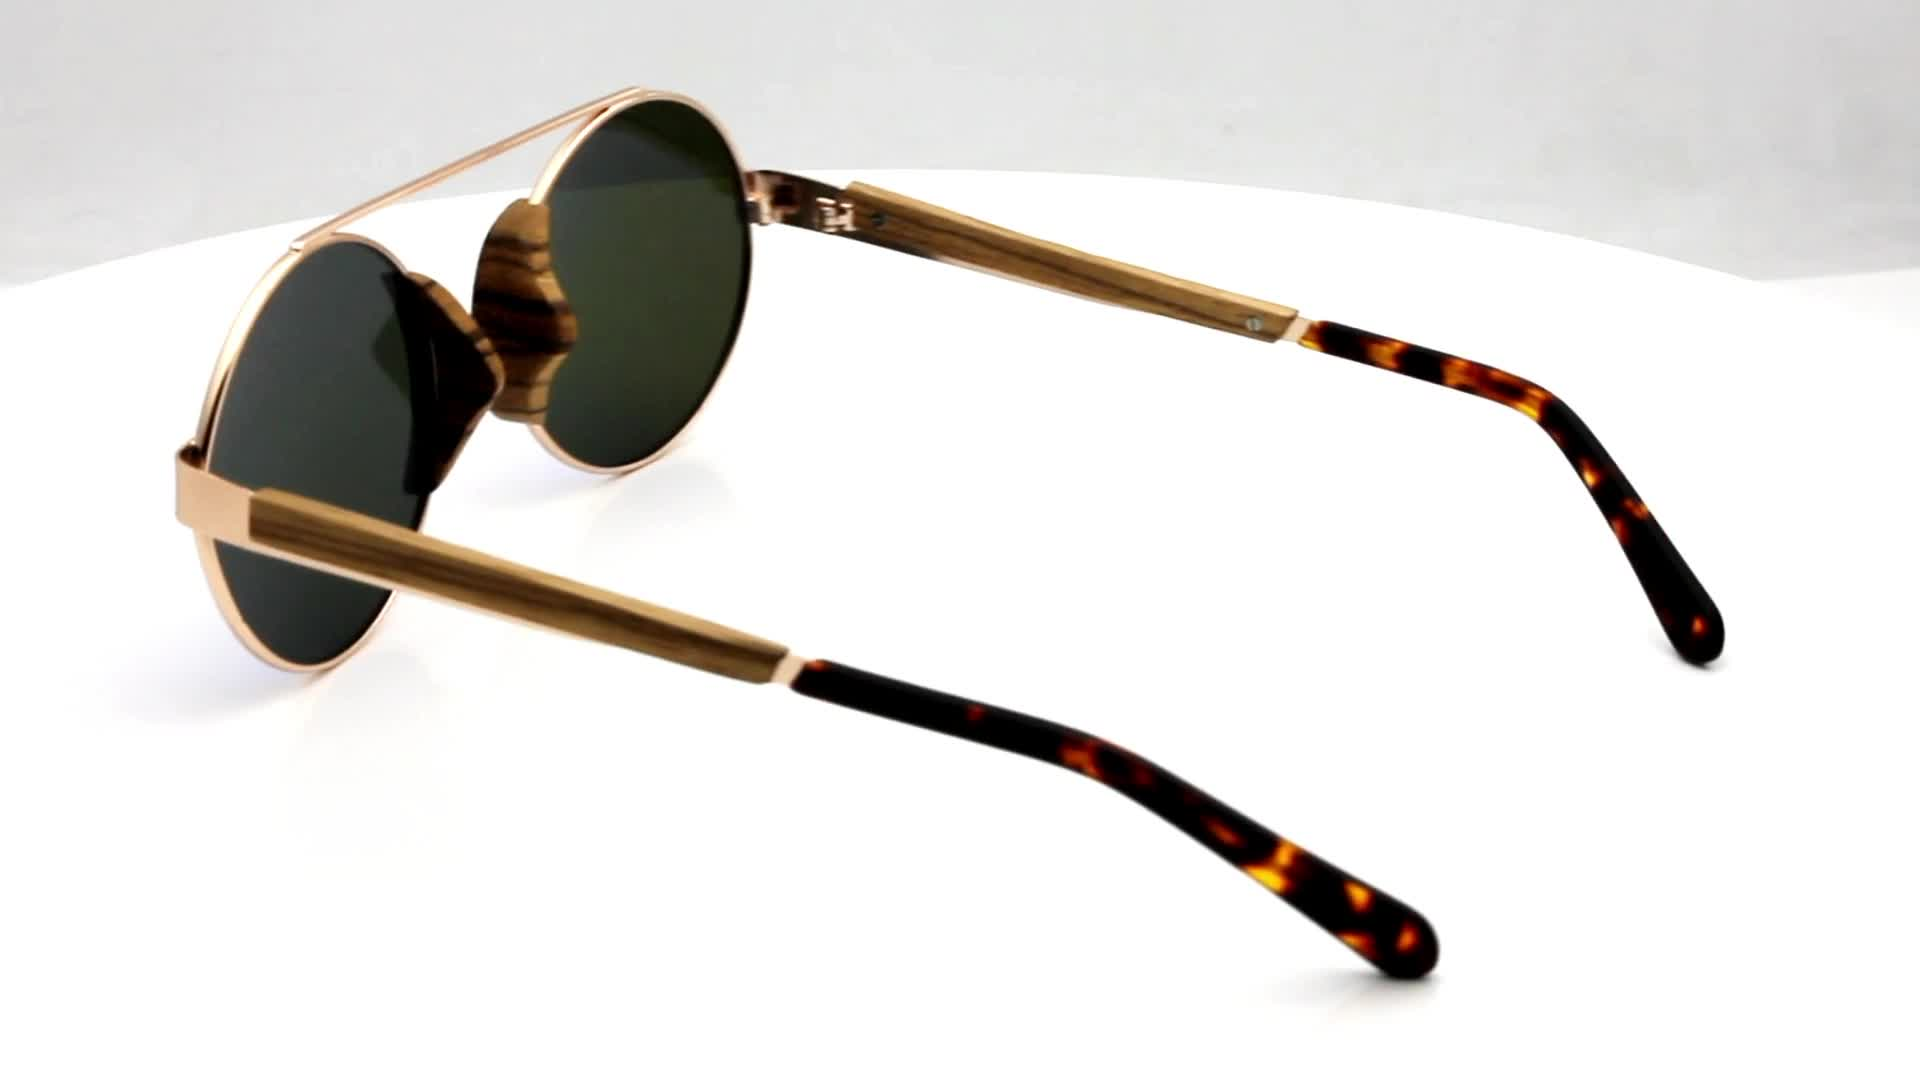 New style  special zebra acetate wood sunglasses with polarized lens made in China